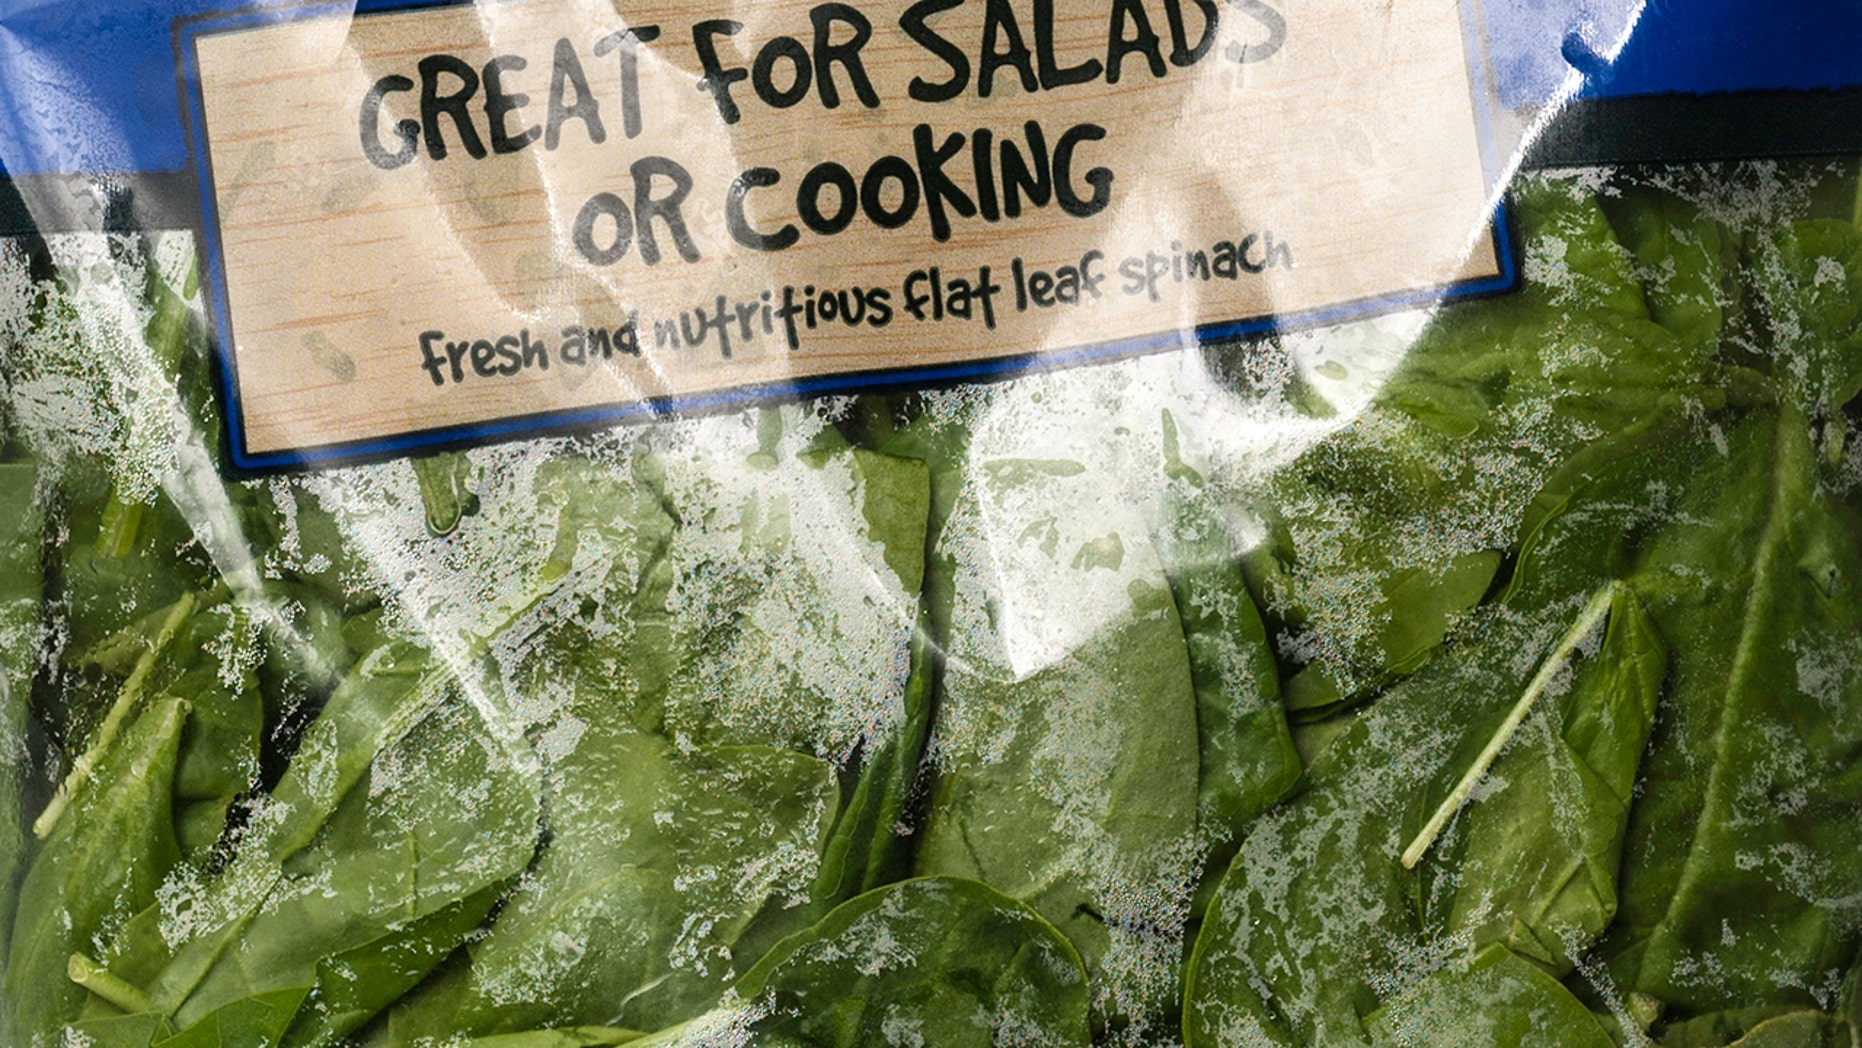 A study from UC Riverside found that spinach, especially, needs another good rinse.